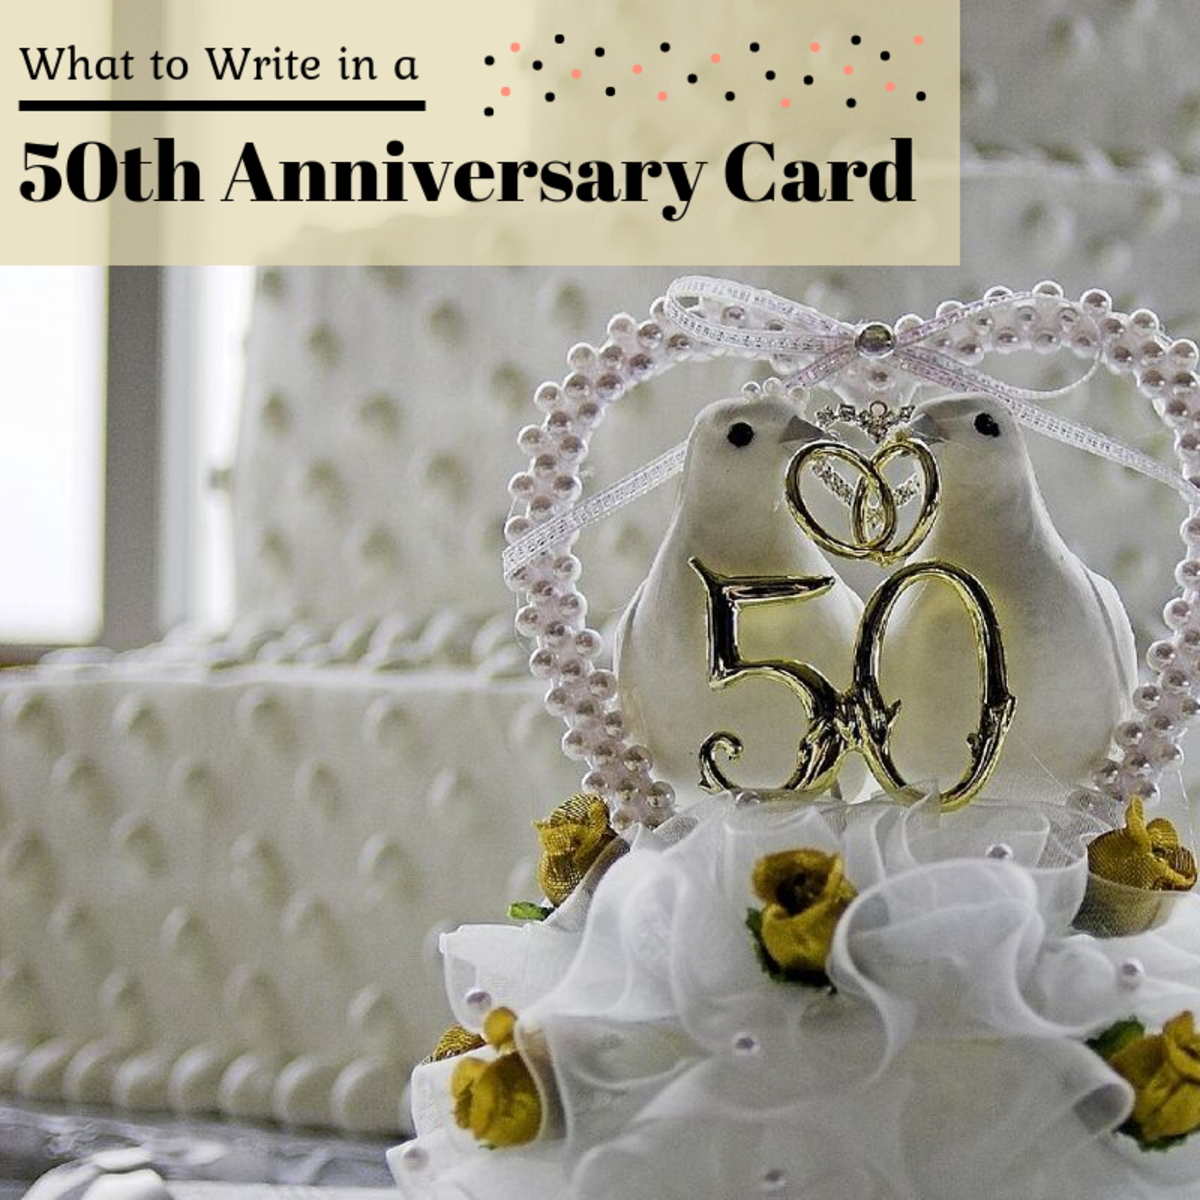 50th Anniversary Wishes: What to Write in a Card